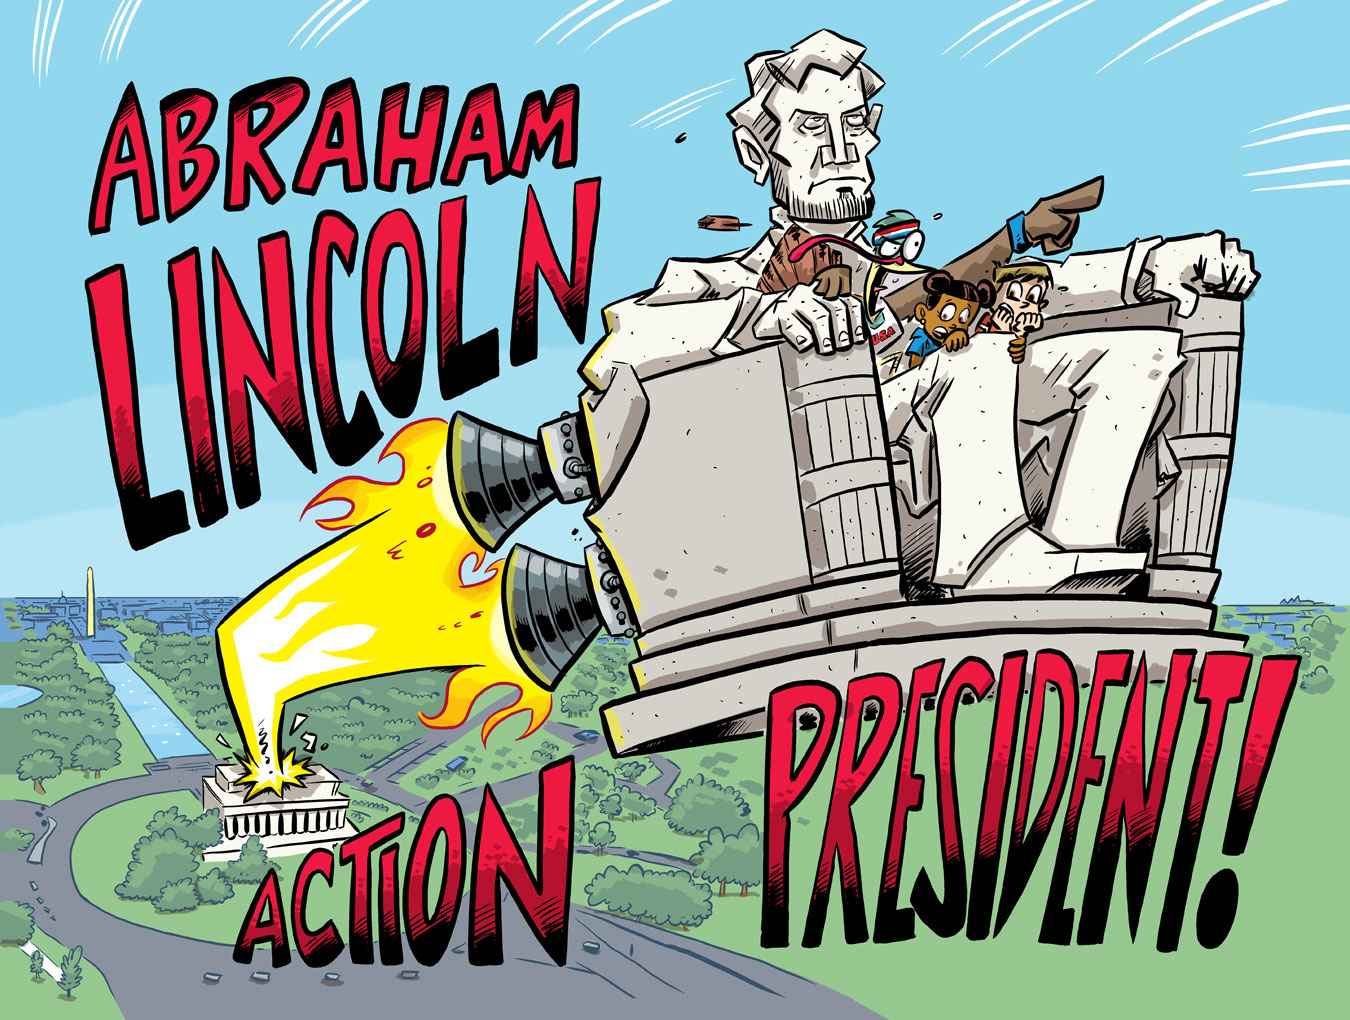 Action President: Abraham Lincoln